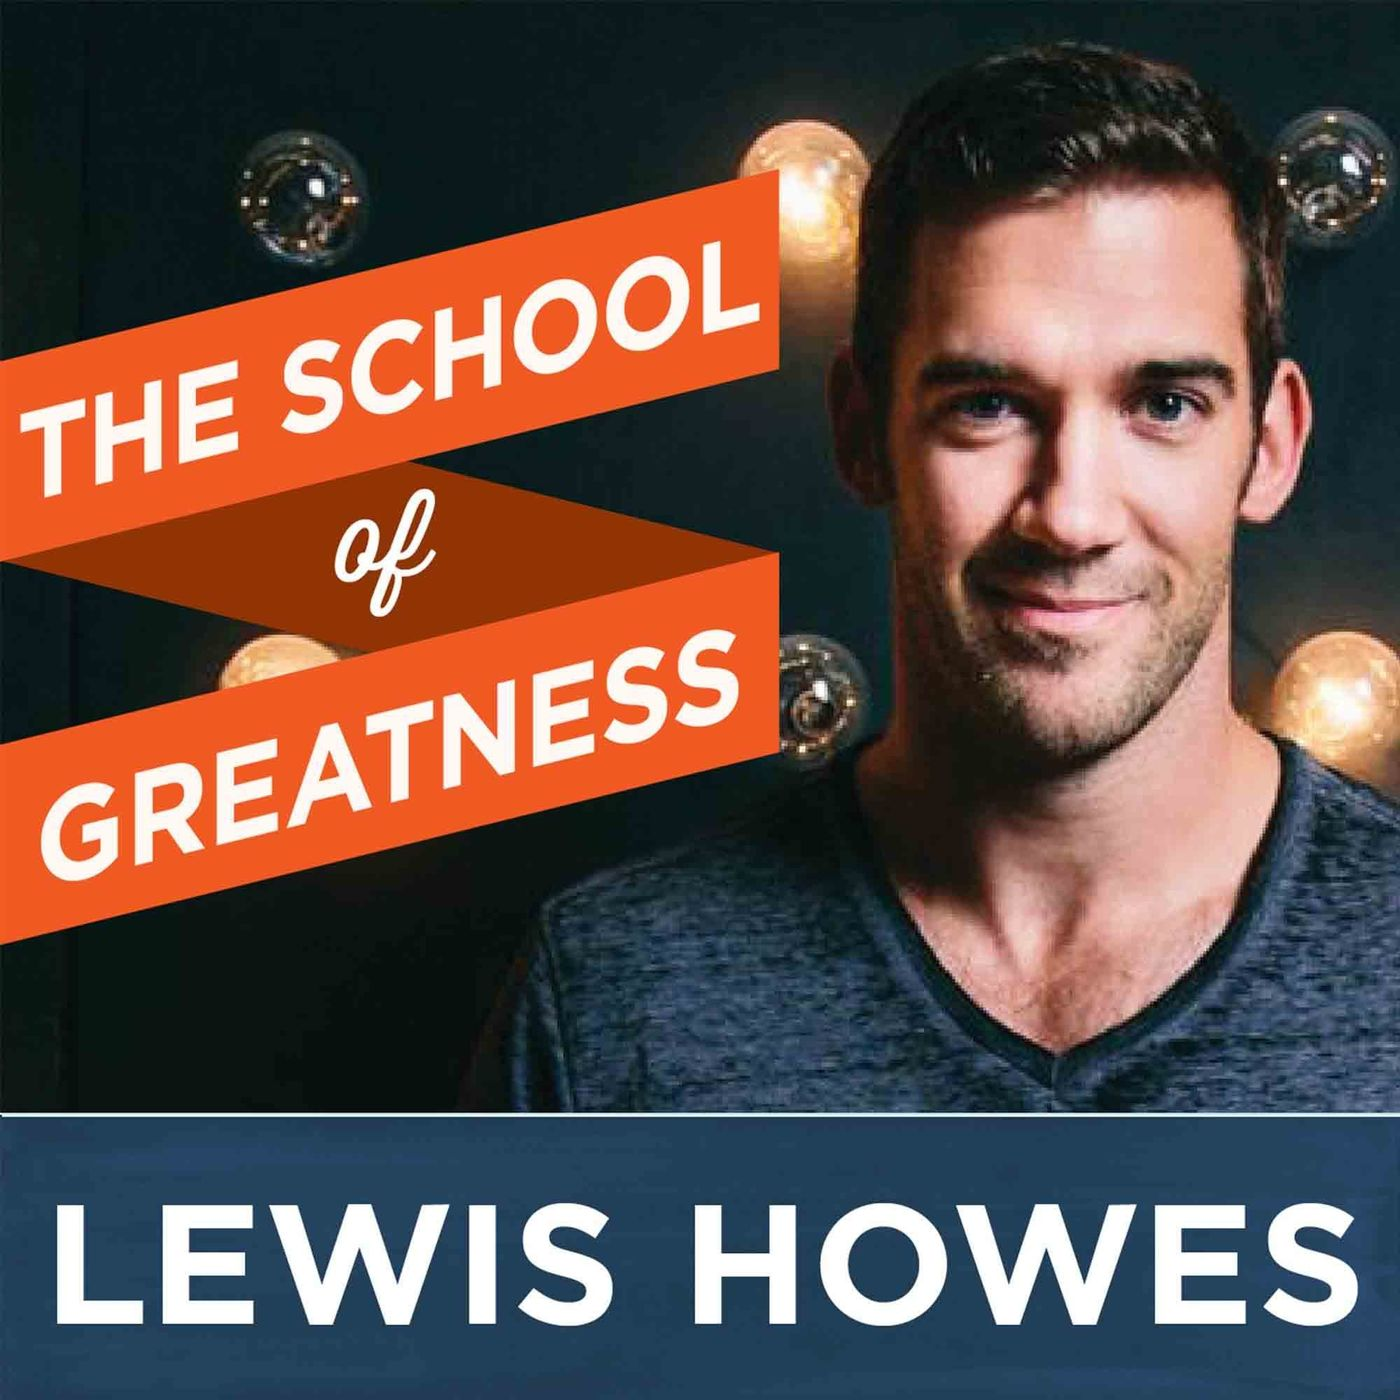 1001 Lessons on Greatness, Growth, and Healing w/Kobe Bryant, Preethaji, & More